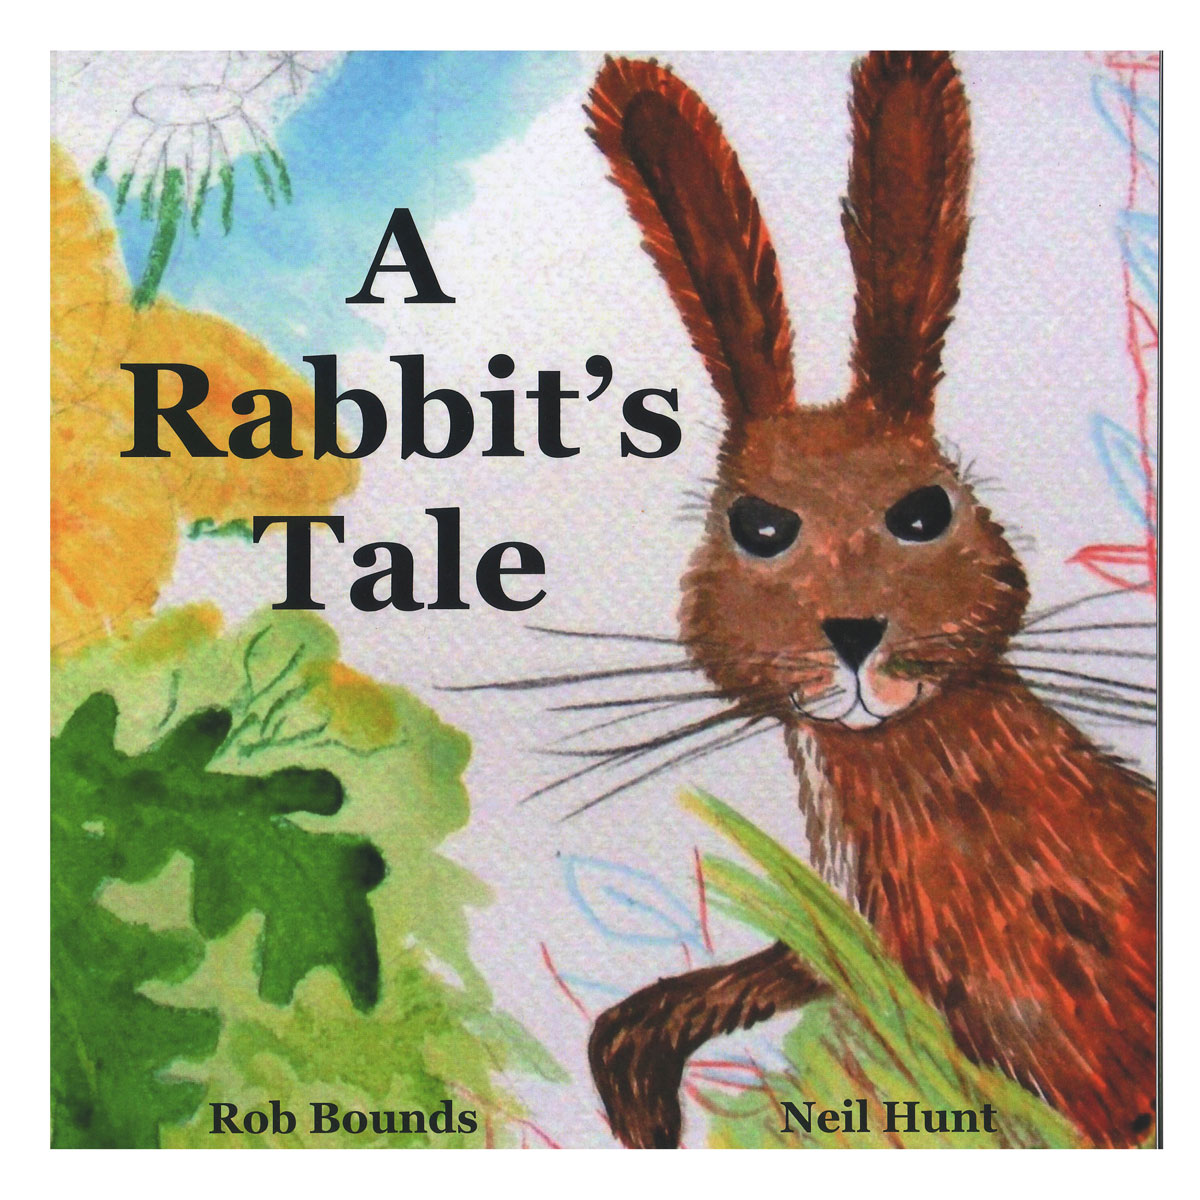 A Rabbit's Tale book